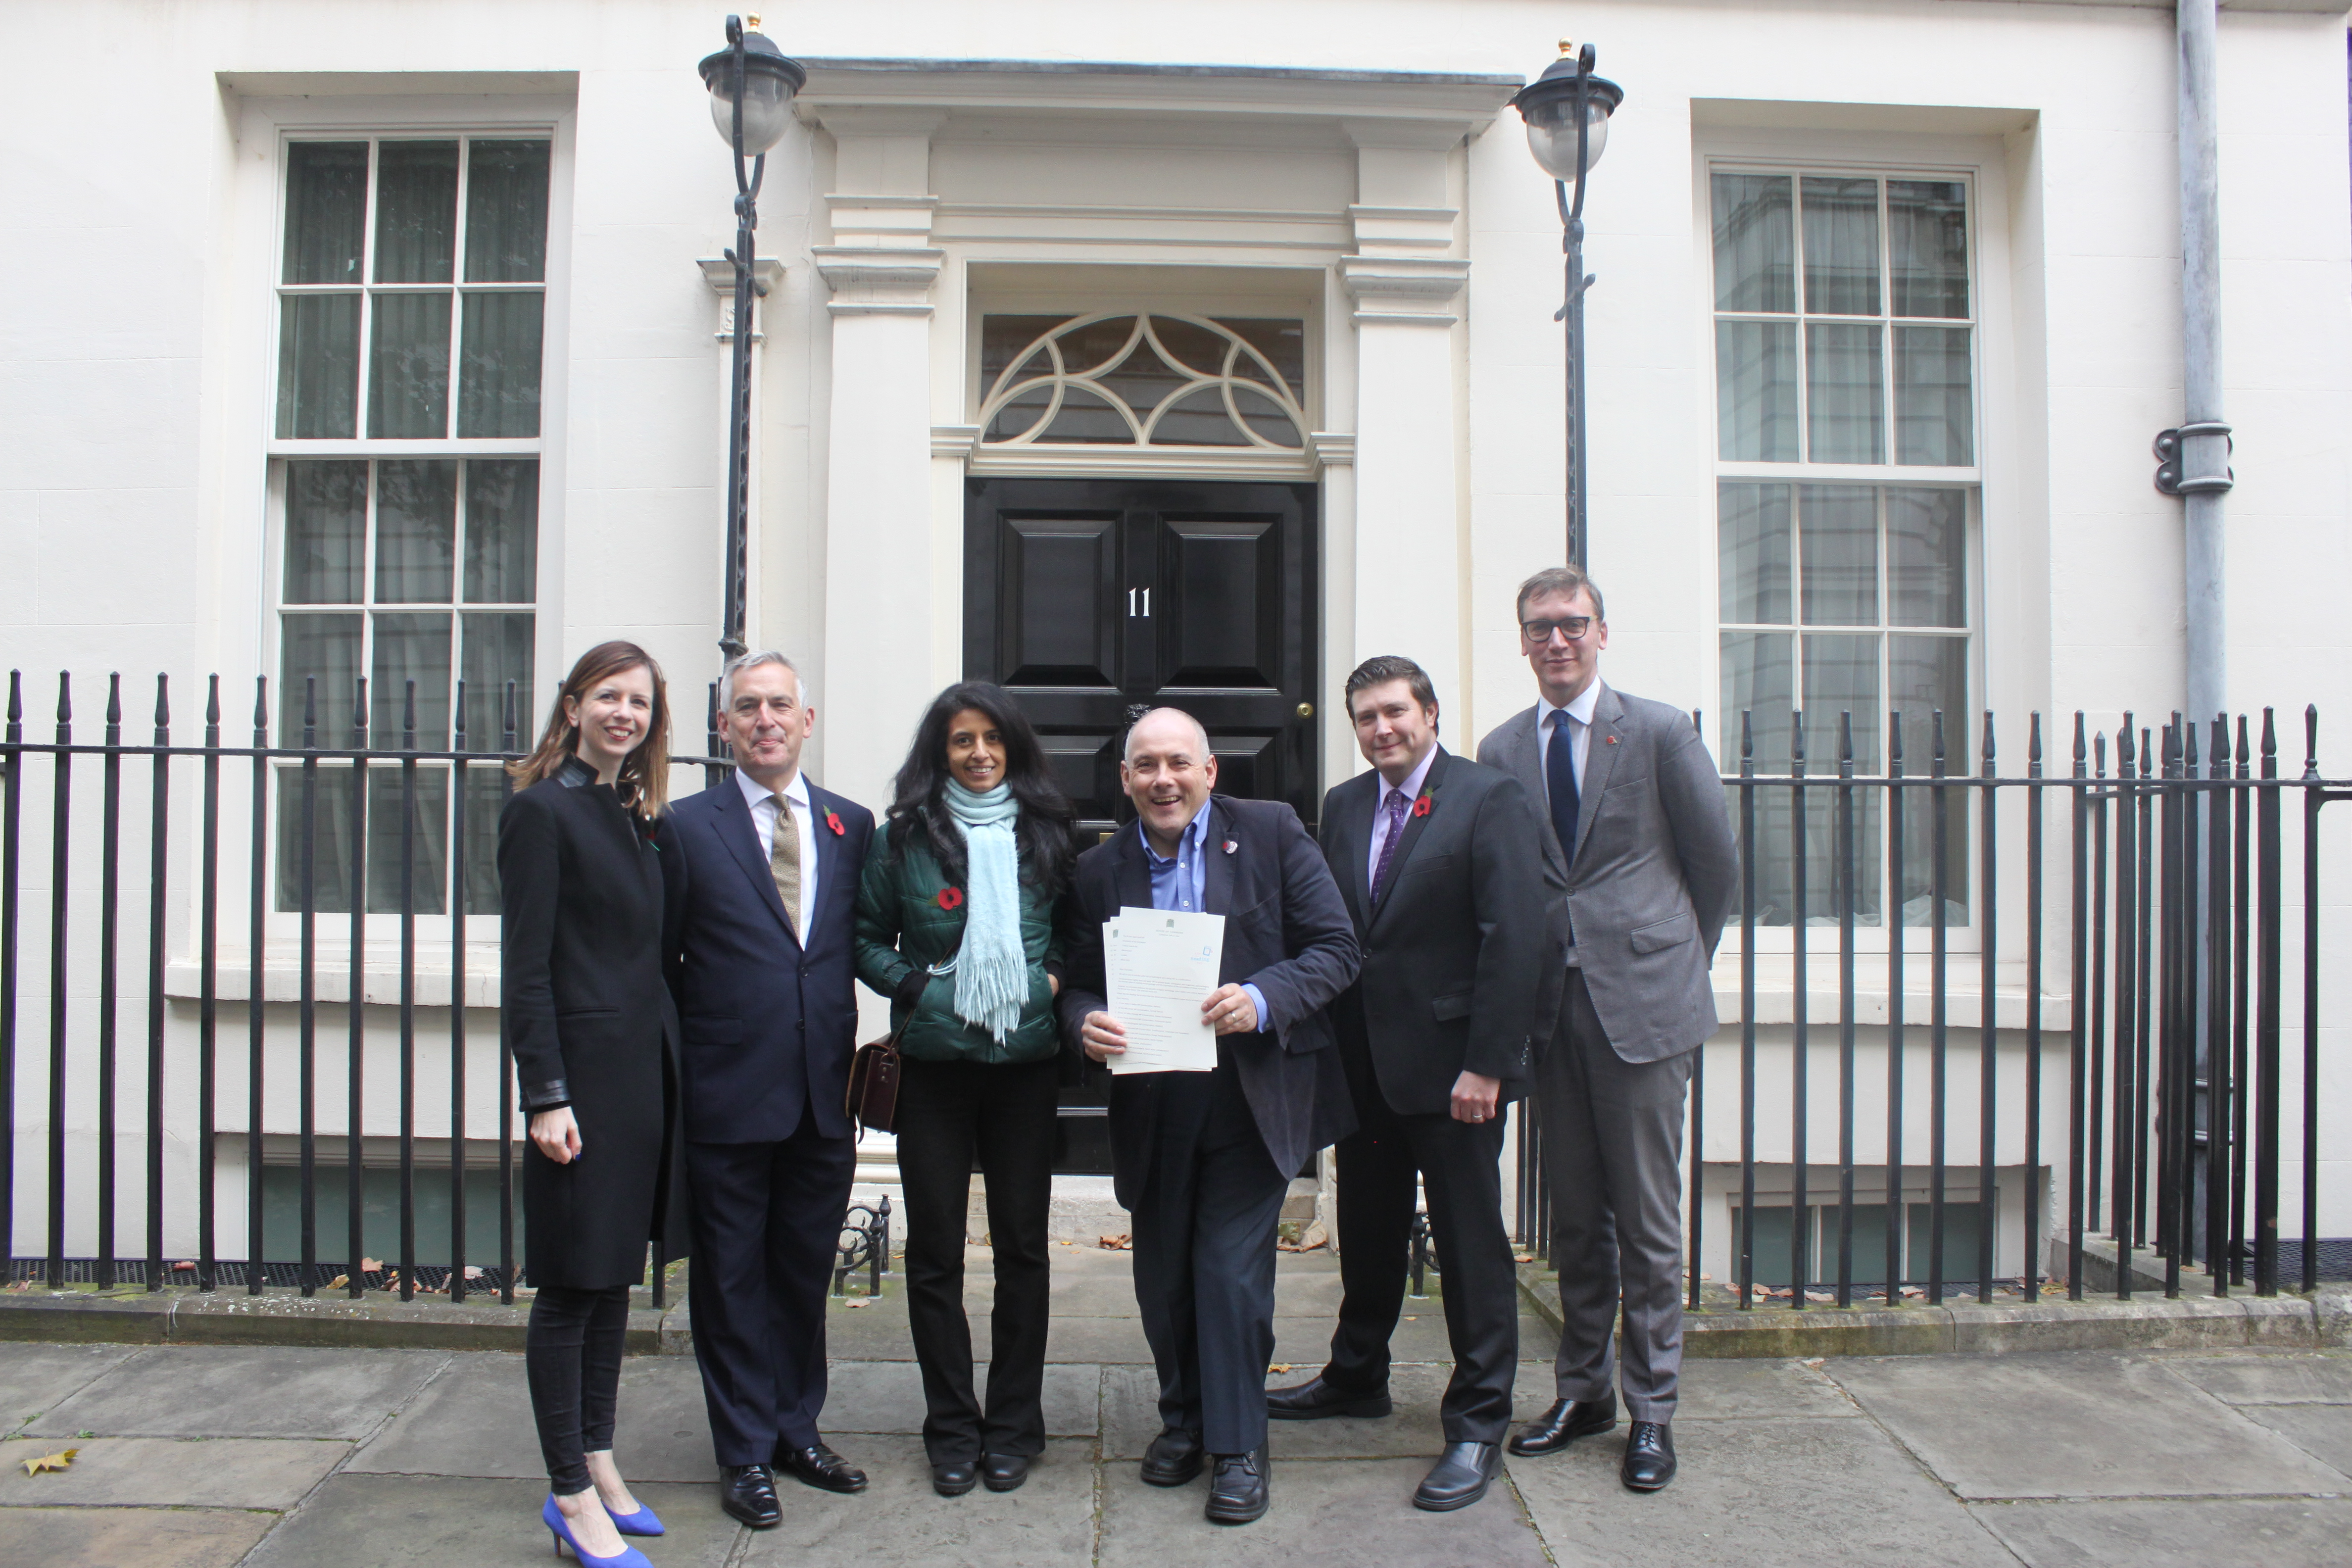 From left to right, in front of 11 Downing Street: Eleanor Thompson, RNIB Head of Policy and Public Affairs, Jonathan Douglas, CEO of the National Literacy Trust, Konnie Huq, children's author and ex-Blue Peter presenter, Robert Halfon MP.